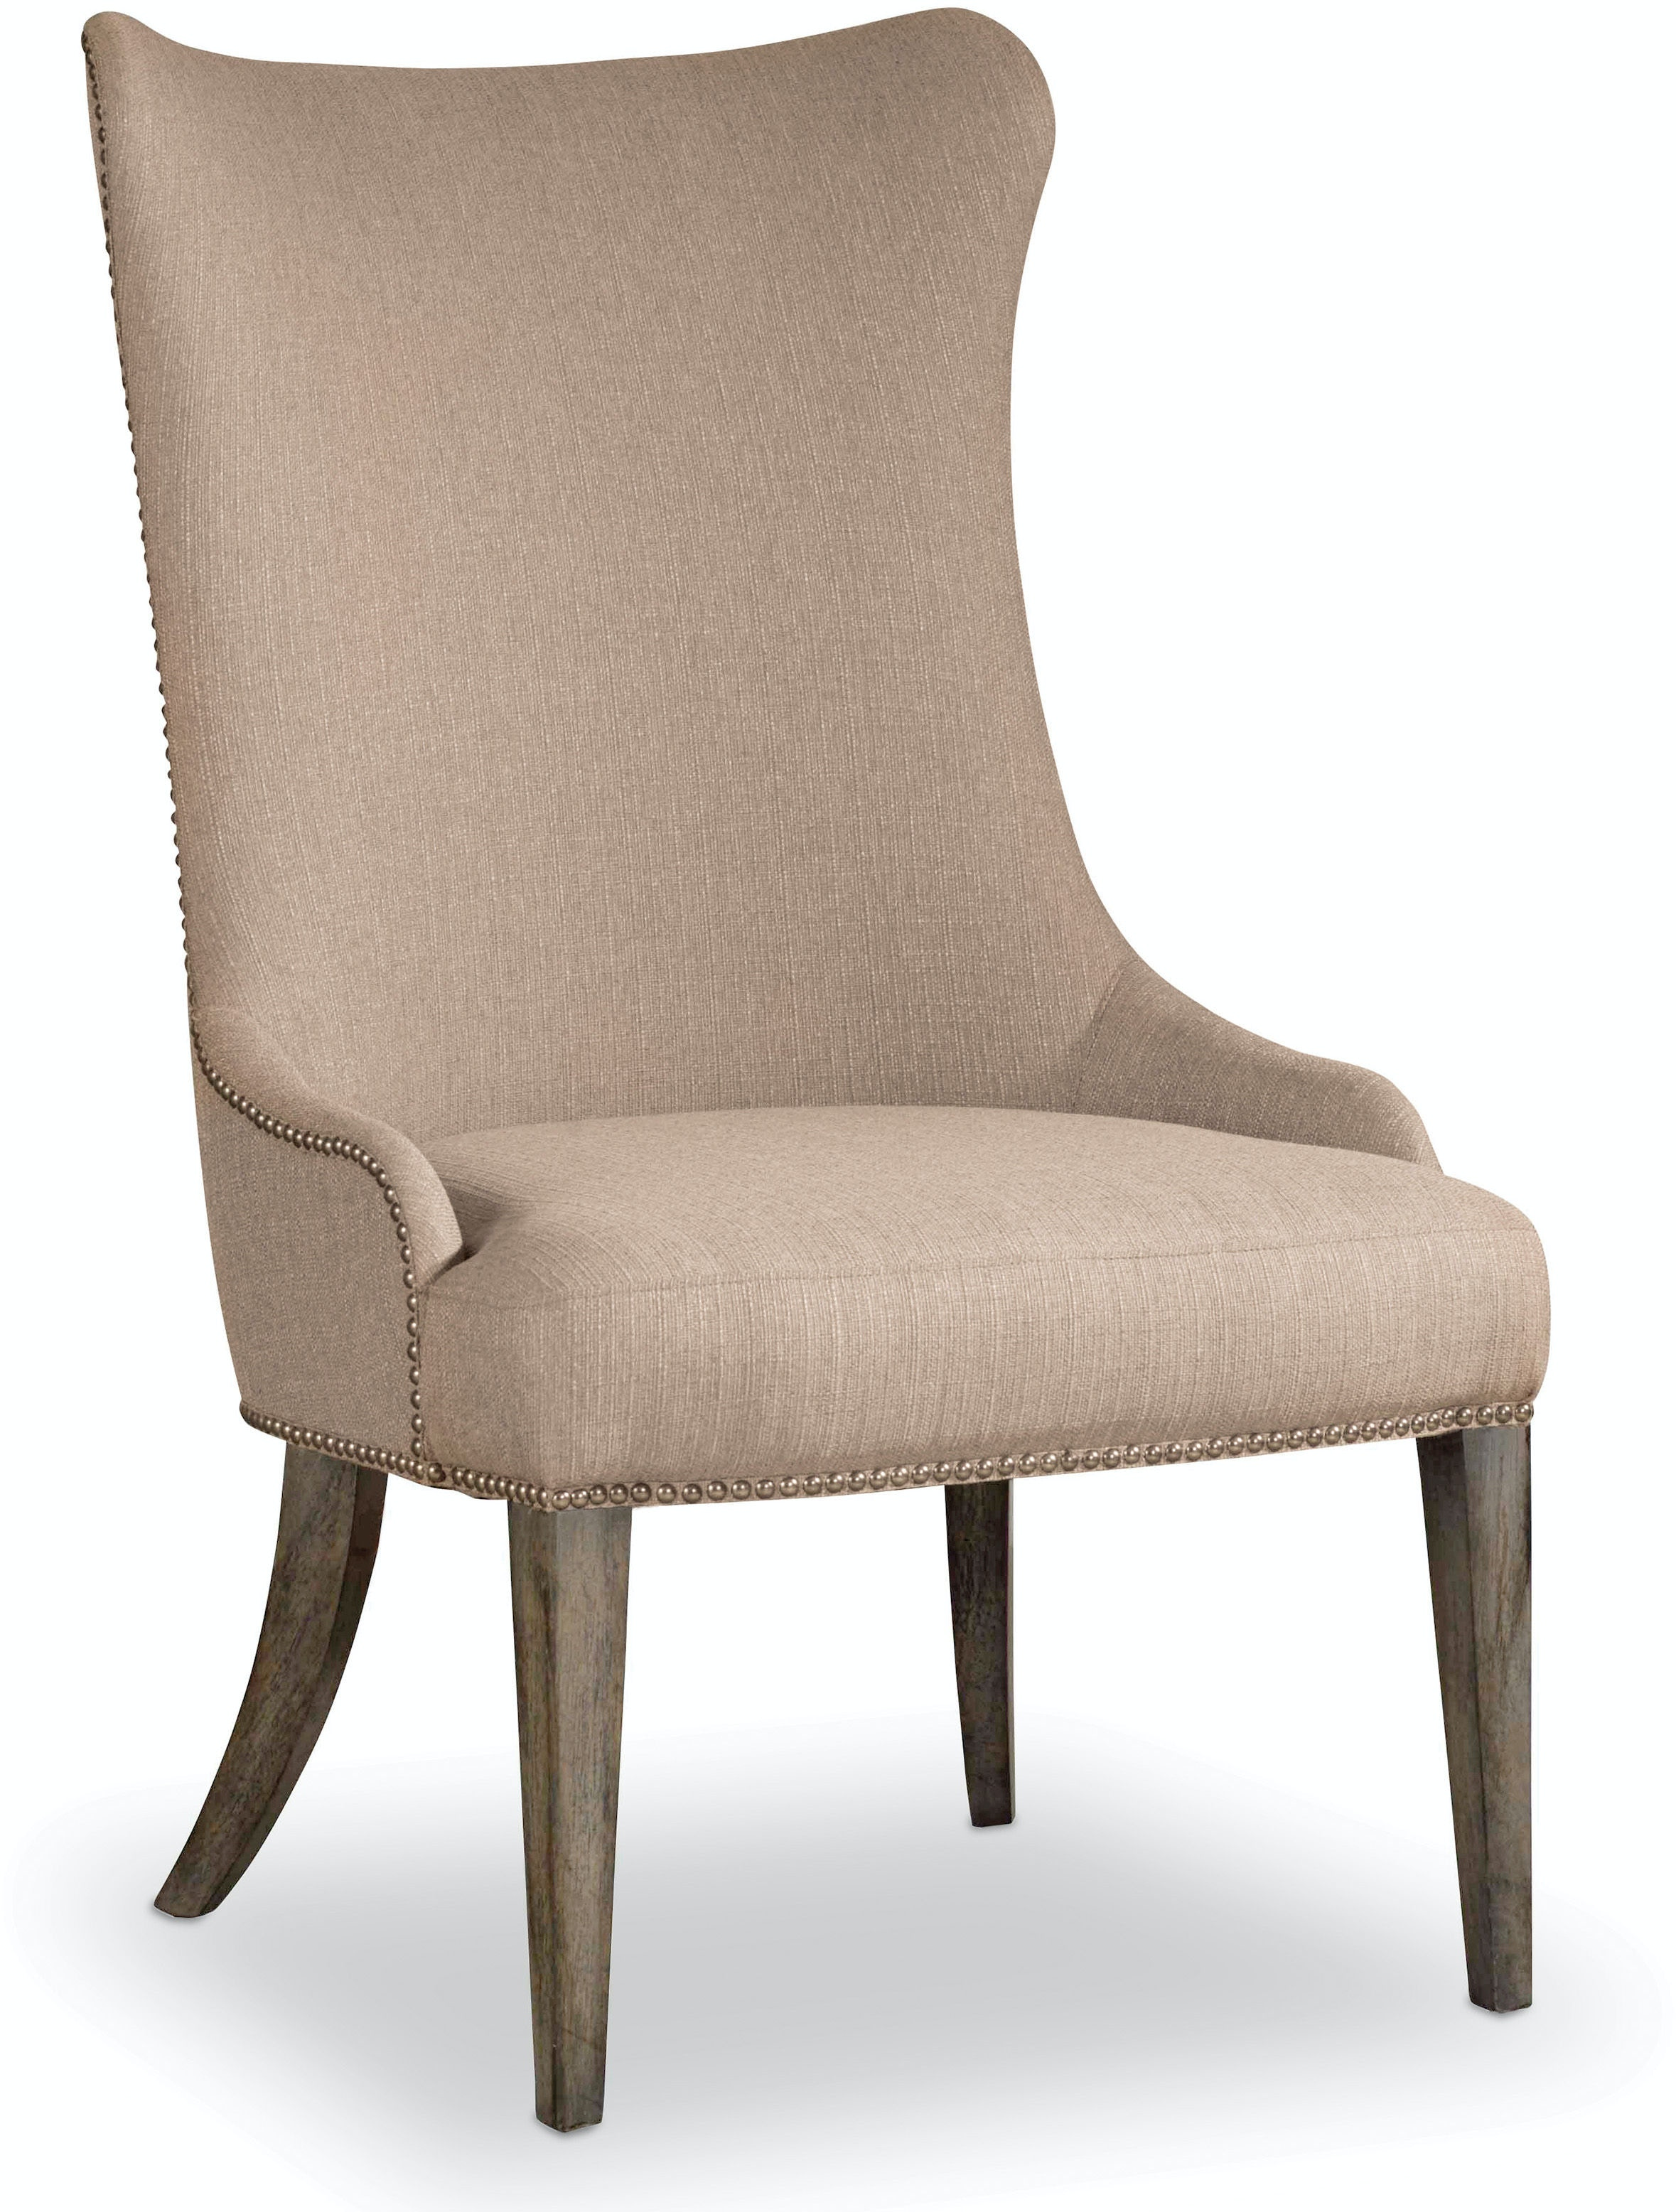 Hooker Furniture True Vintage Upholstered Dining Chair 5702 75500